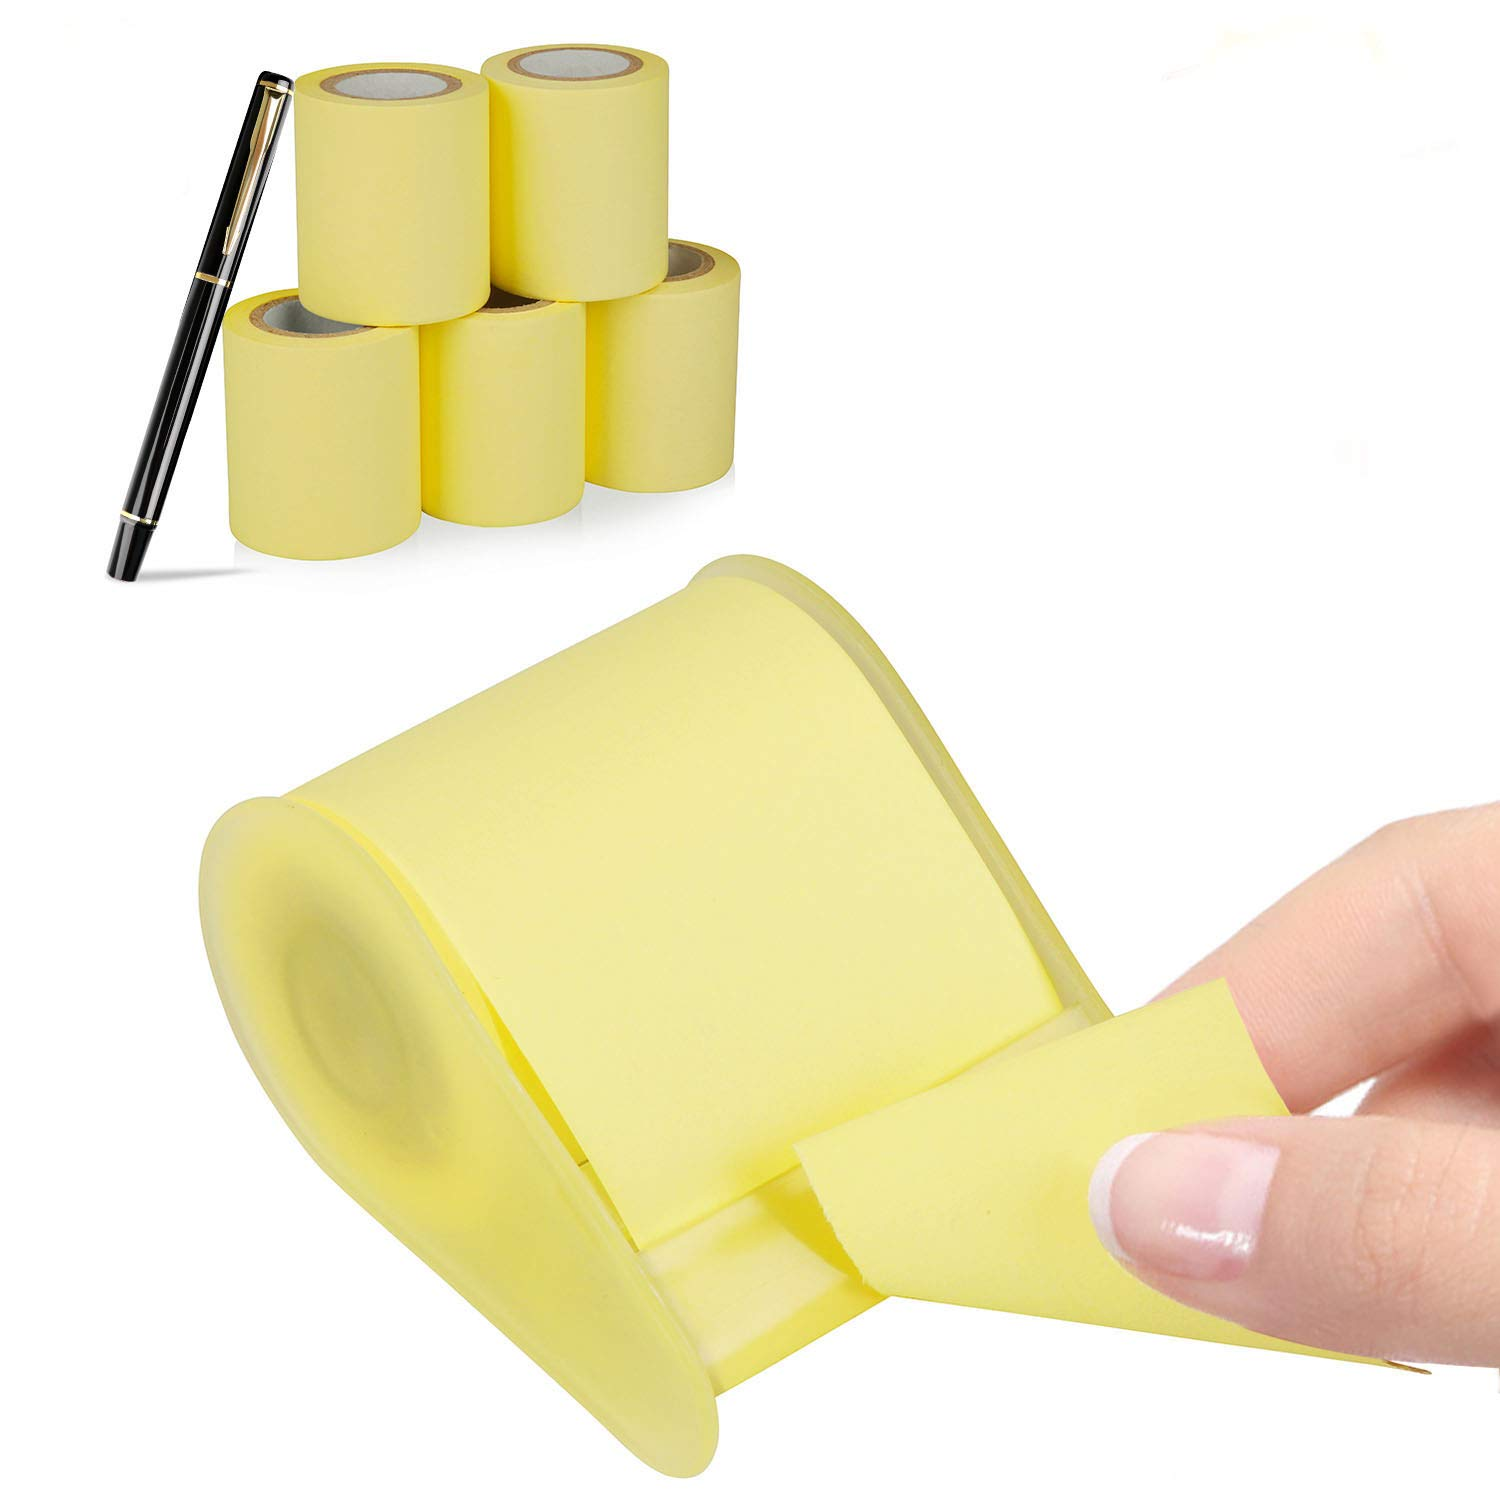 Super Sticky Notes, Full Adhesive Roll Sticky Notes, Dispenser for Different Size, 3 x 315 in, 6 Roll+Pen/Pack Yellow by Hodekt